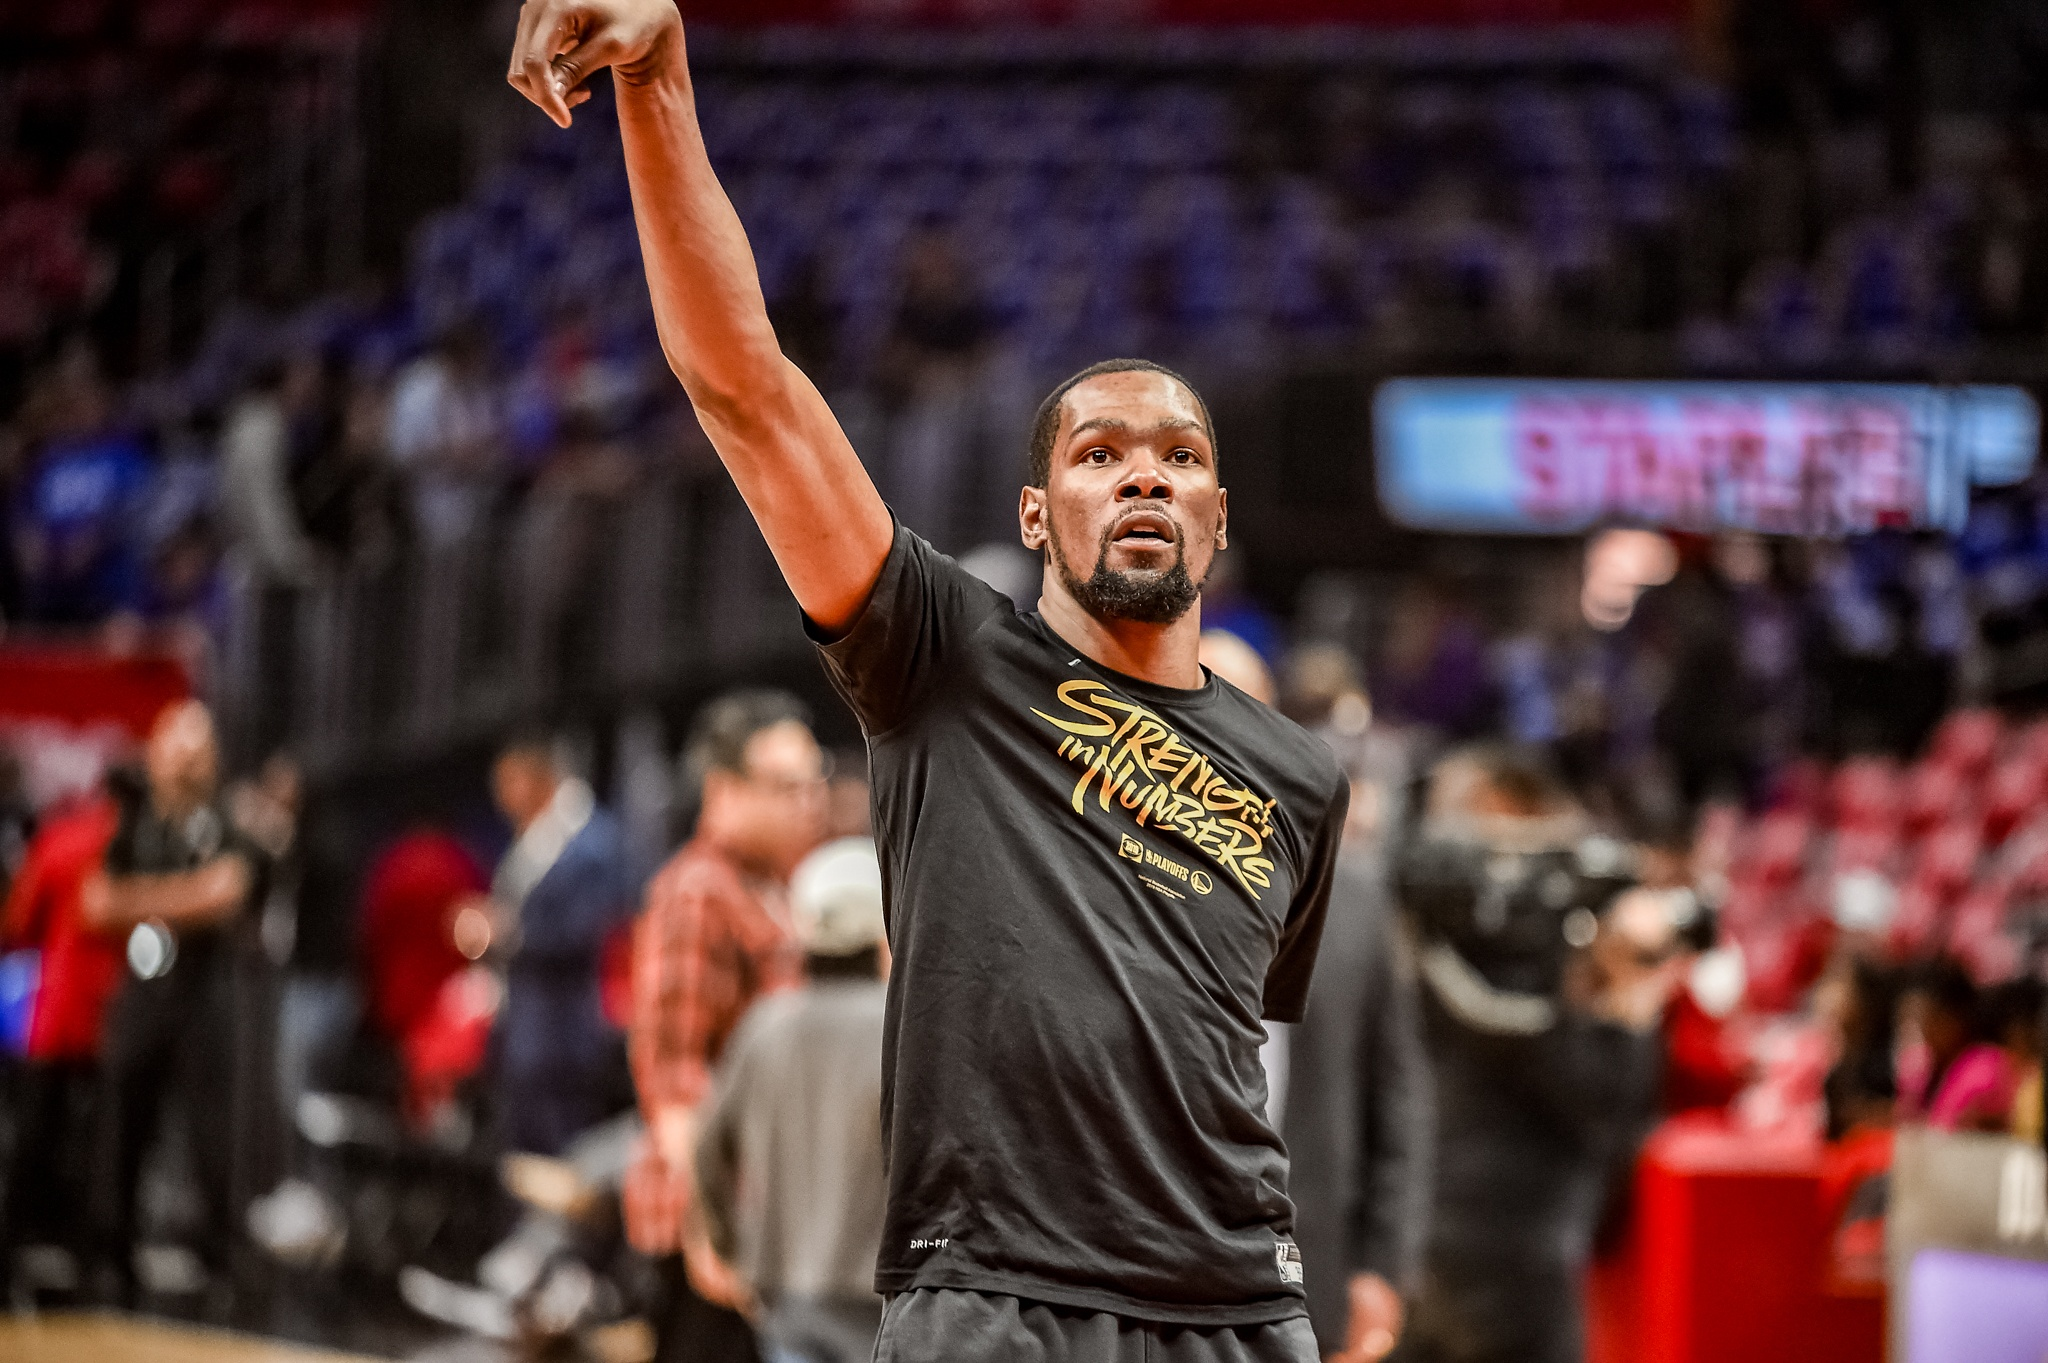 Warriors close out Clippers behind Kevin Durant's 50